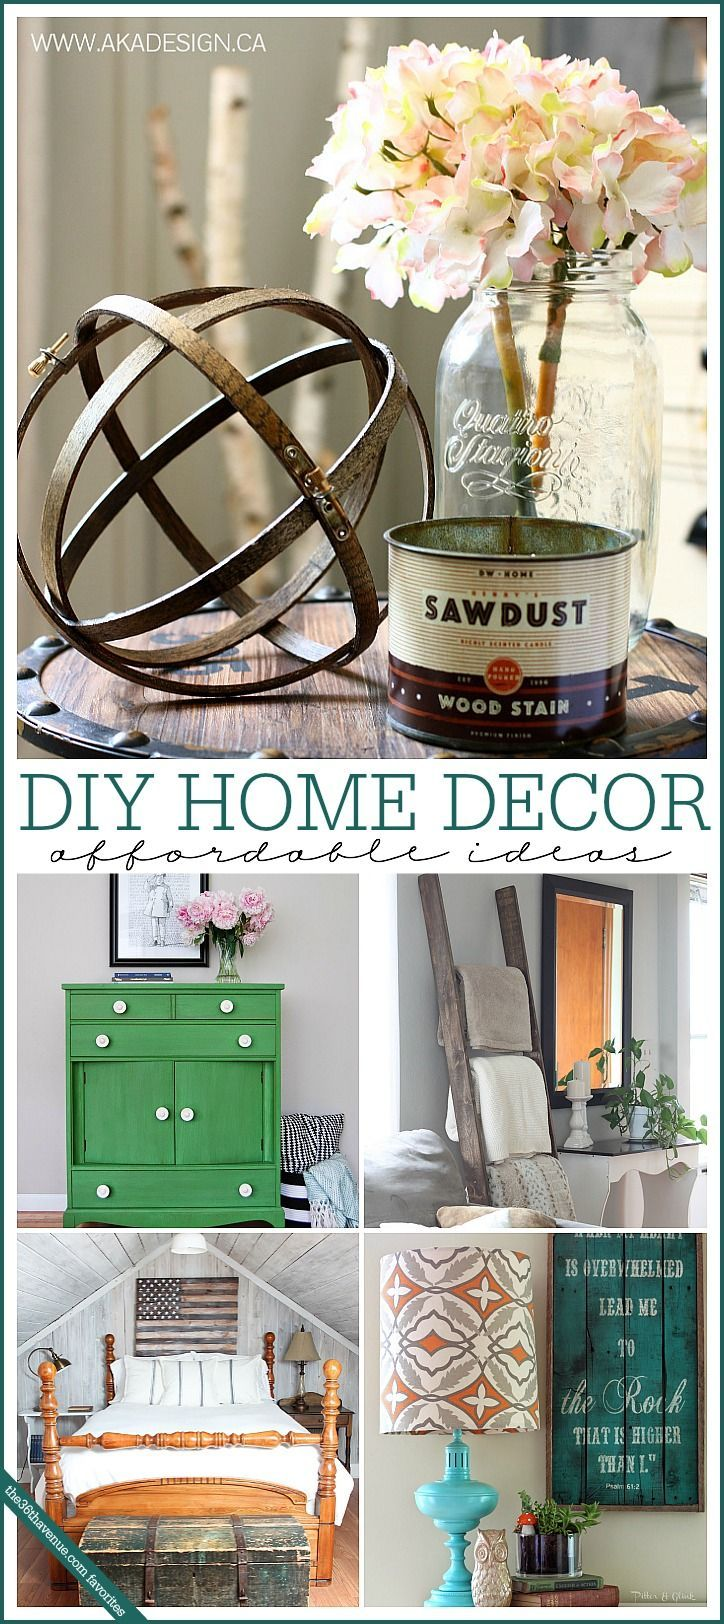 Check out these affordable and inspiring DIY